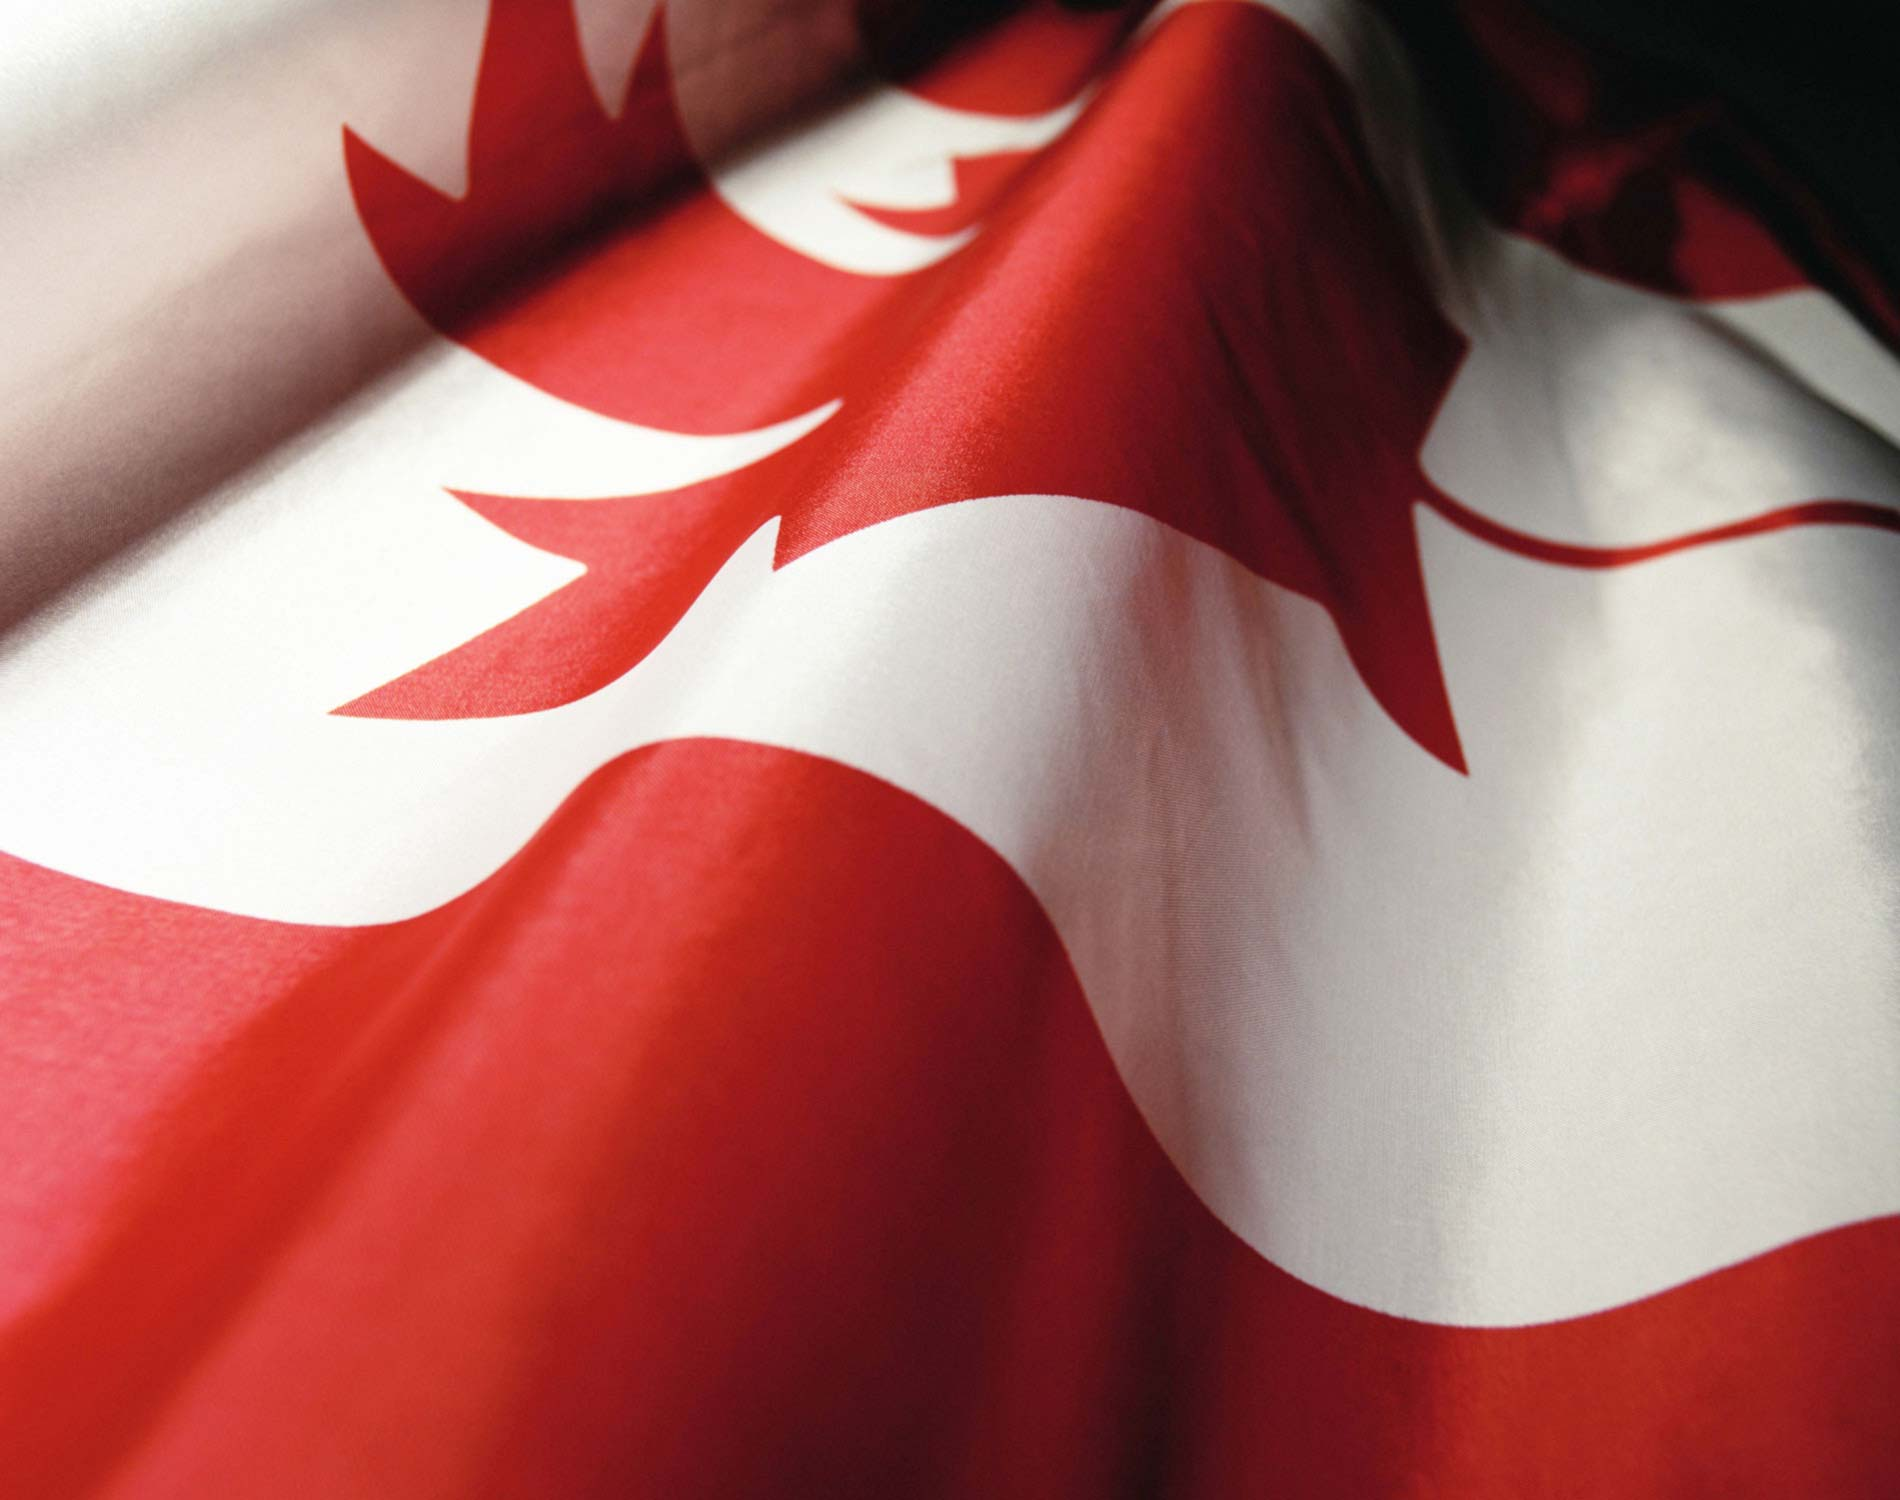 /~/media/Images/Website/Background%20Images/Regions/Canada/Canada%20Flag.ashx